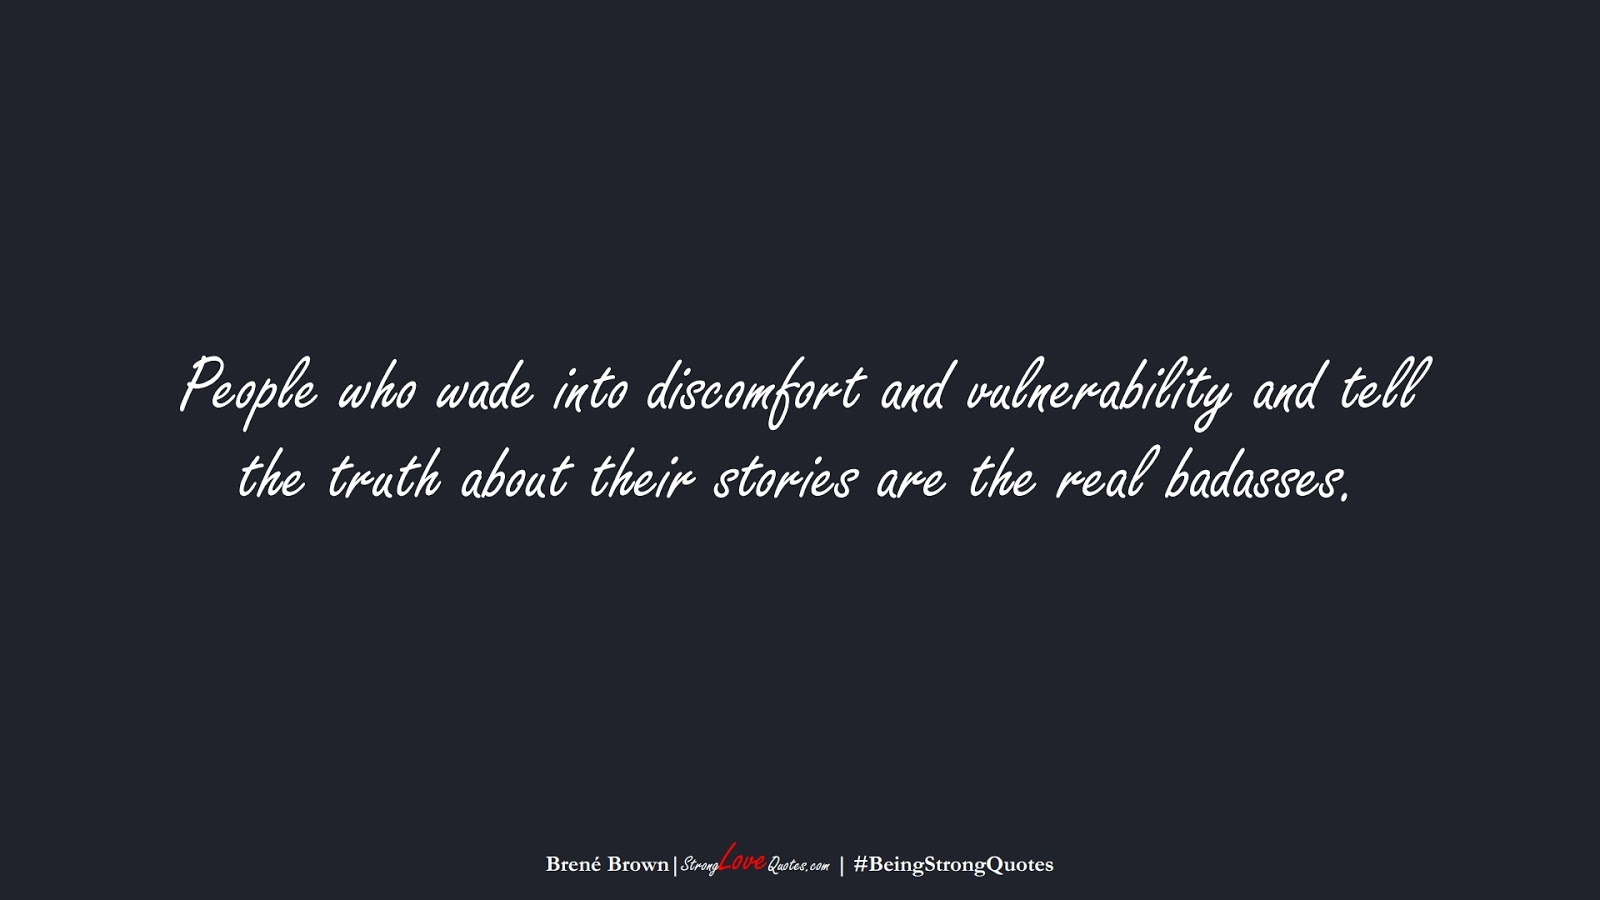 People who wade into discomfort and vulnerability and tell the truth about their stories are the real badasses. (Brené Brown);  #BeingStrongQuotes